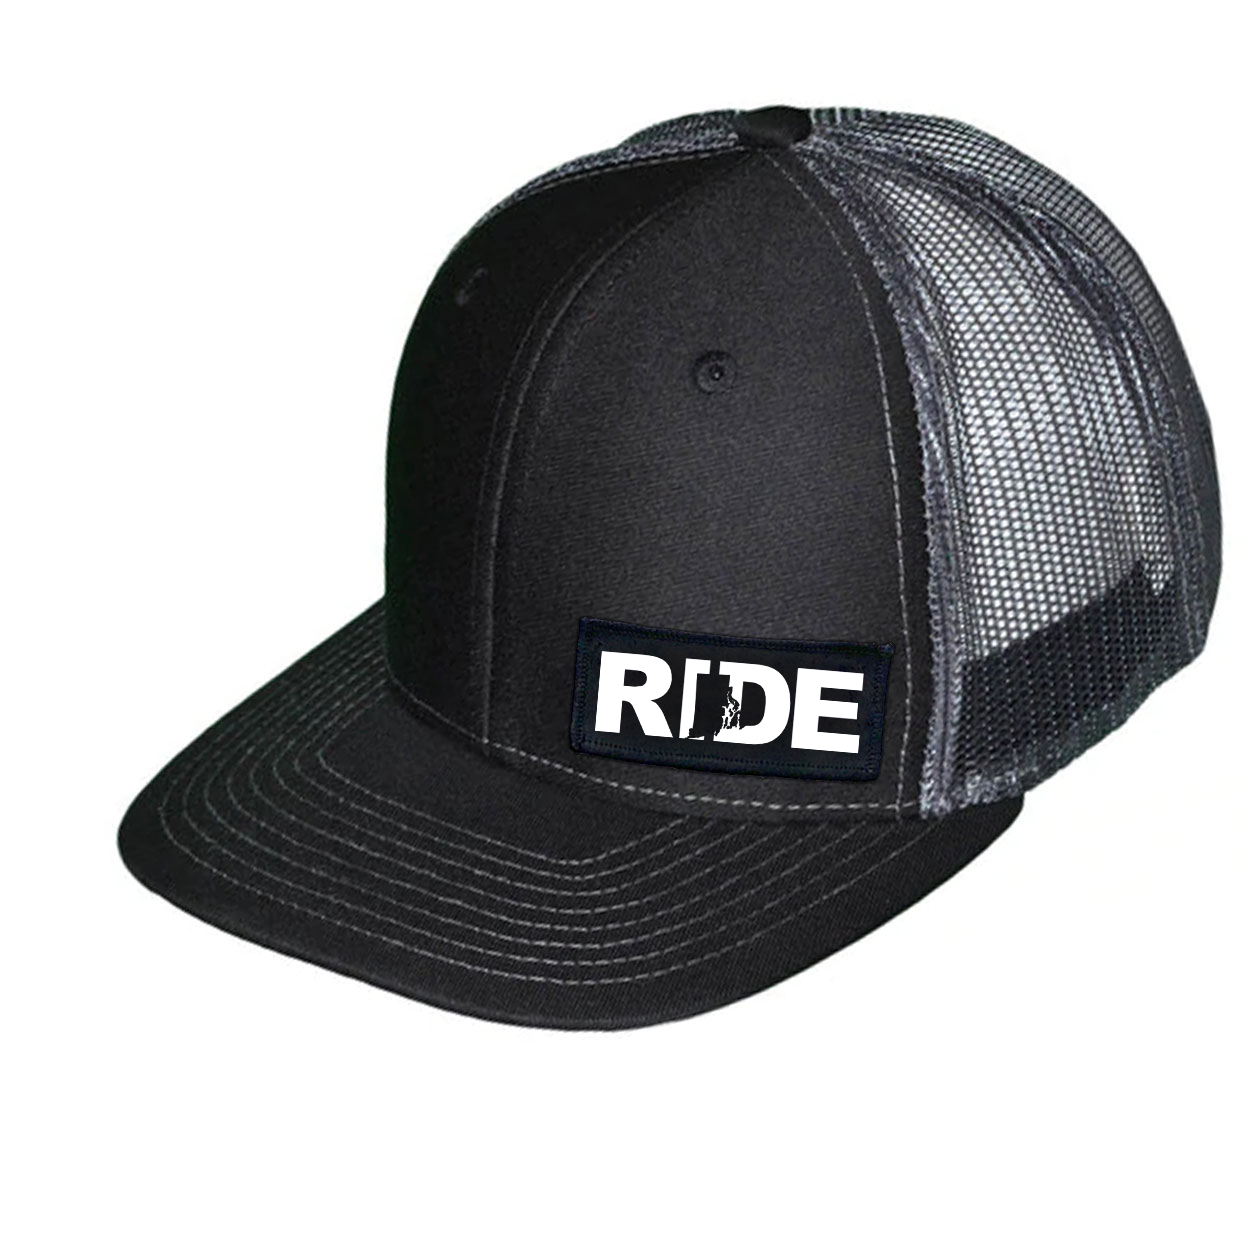 Ride Rhode Island Night Out Woven Patch Snapback Trucker Hat Black/Dark Gray (White Logo)